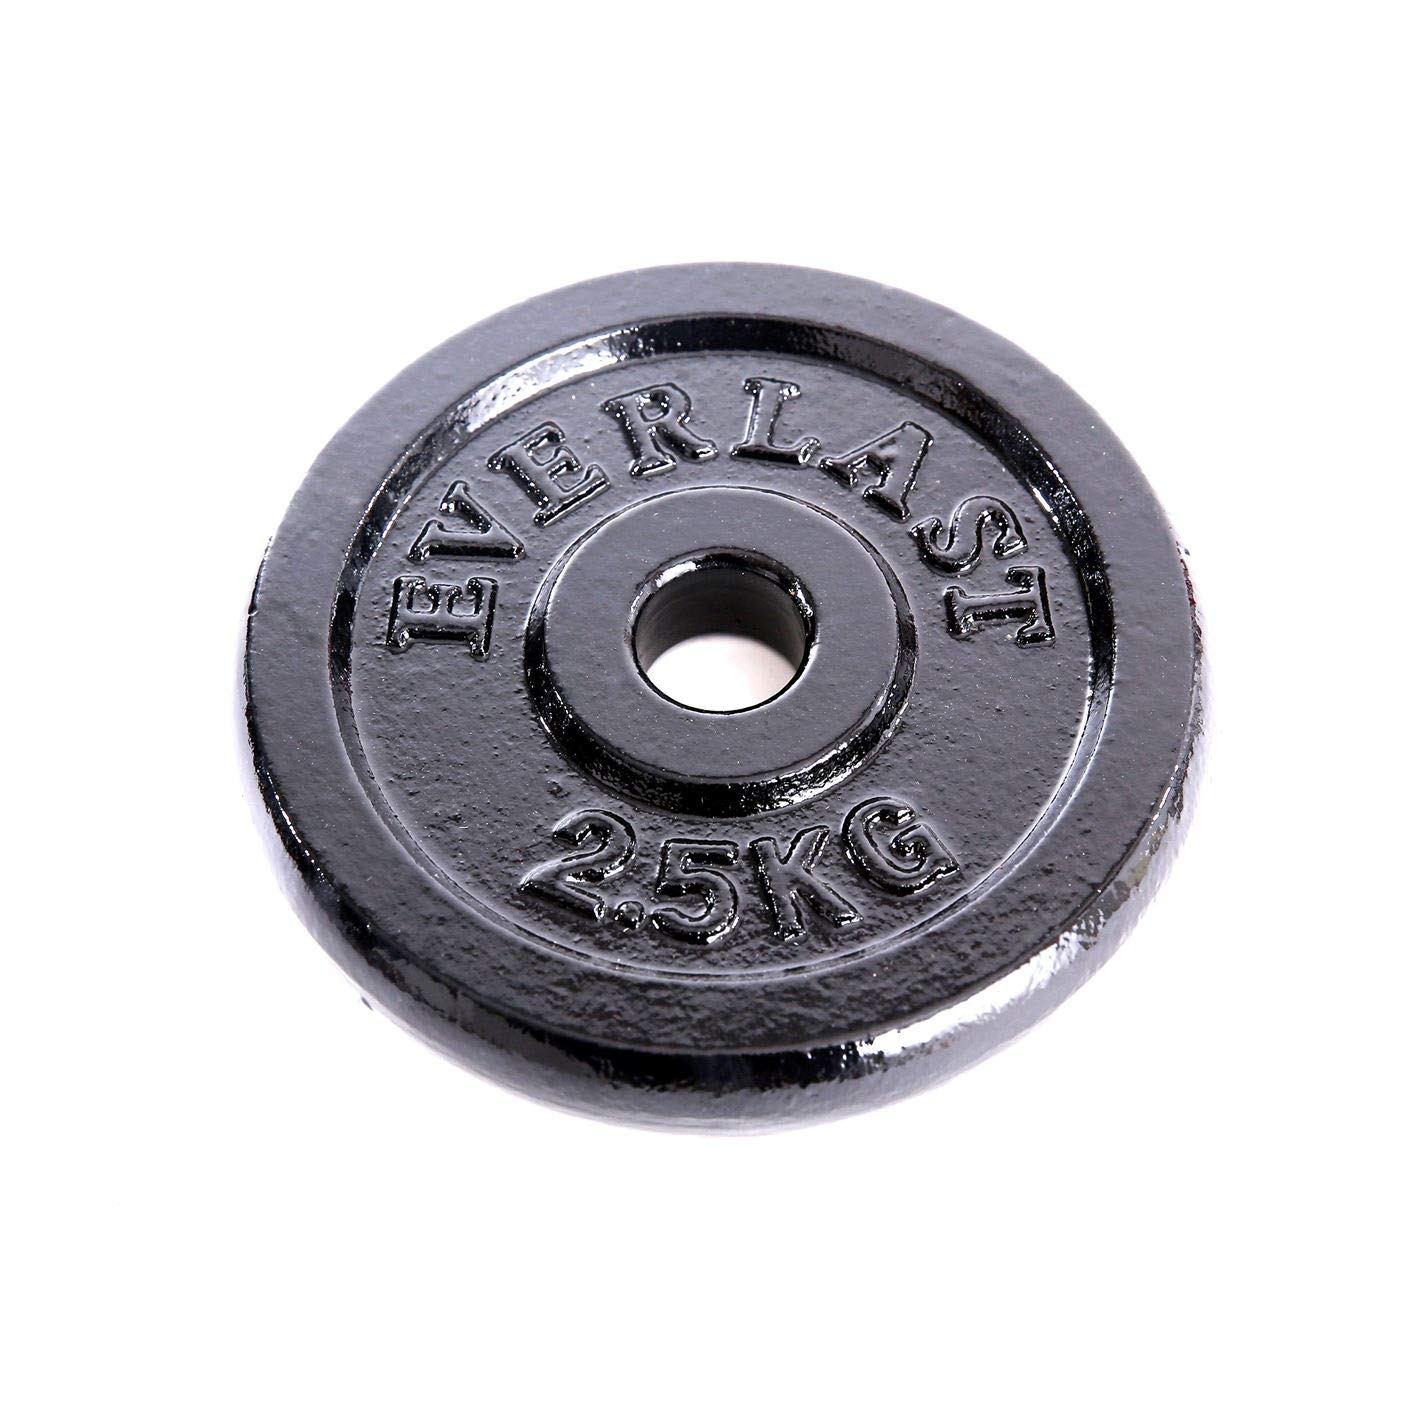 Everlast Unisex Weight Plate